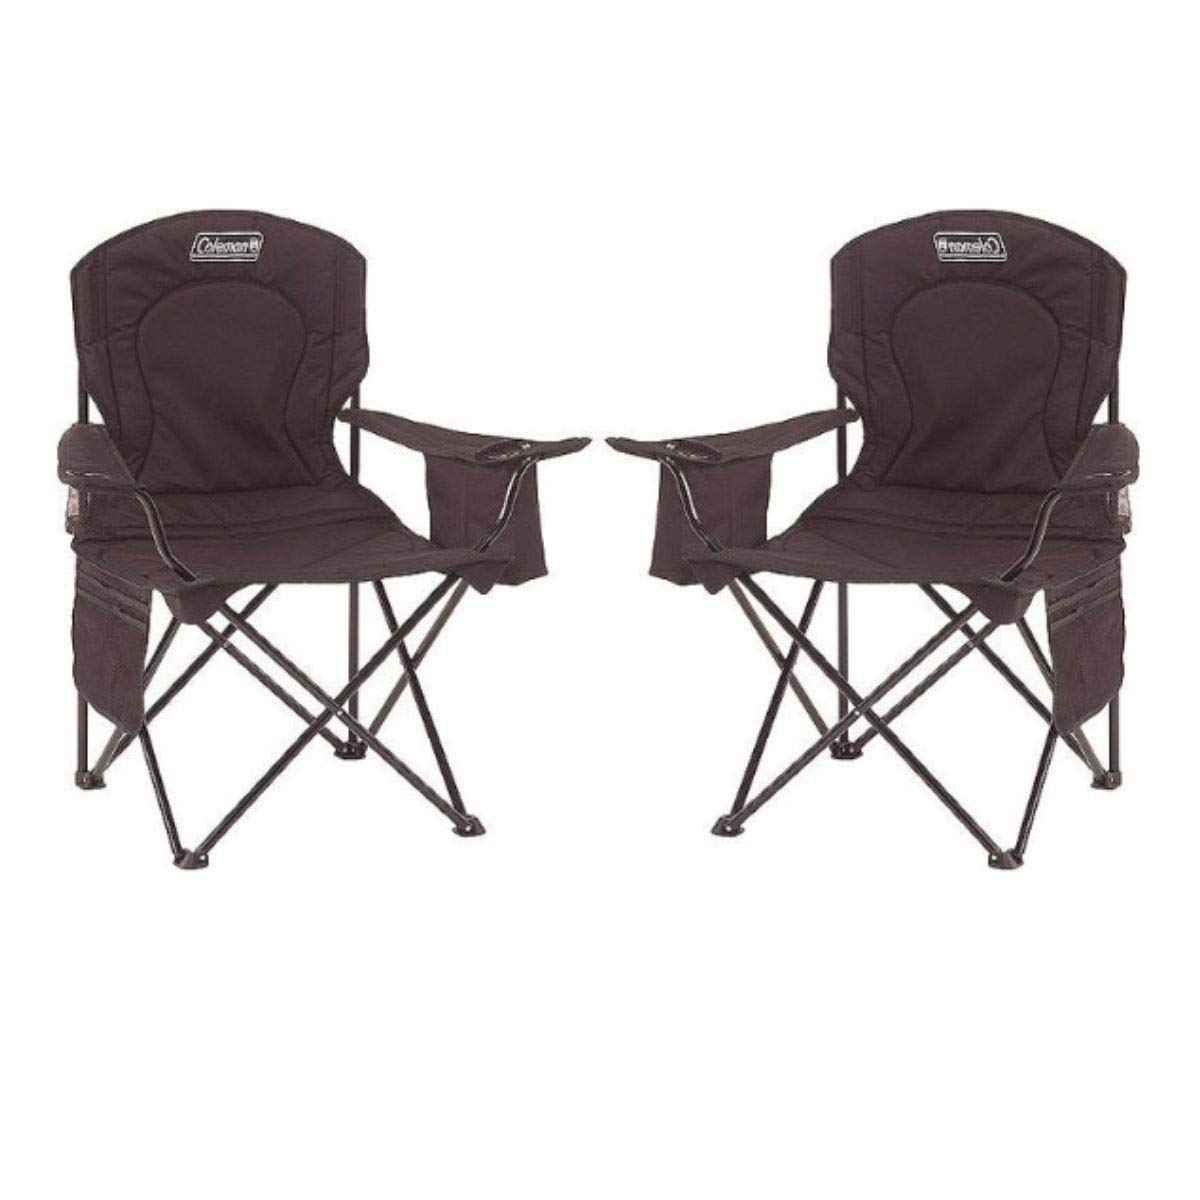 Coleman Oversized Quad Chair with Cooler Pouch (Black/Set of 2) by Coleman